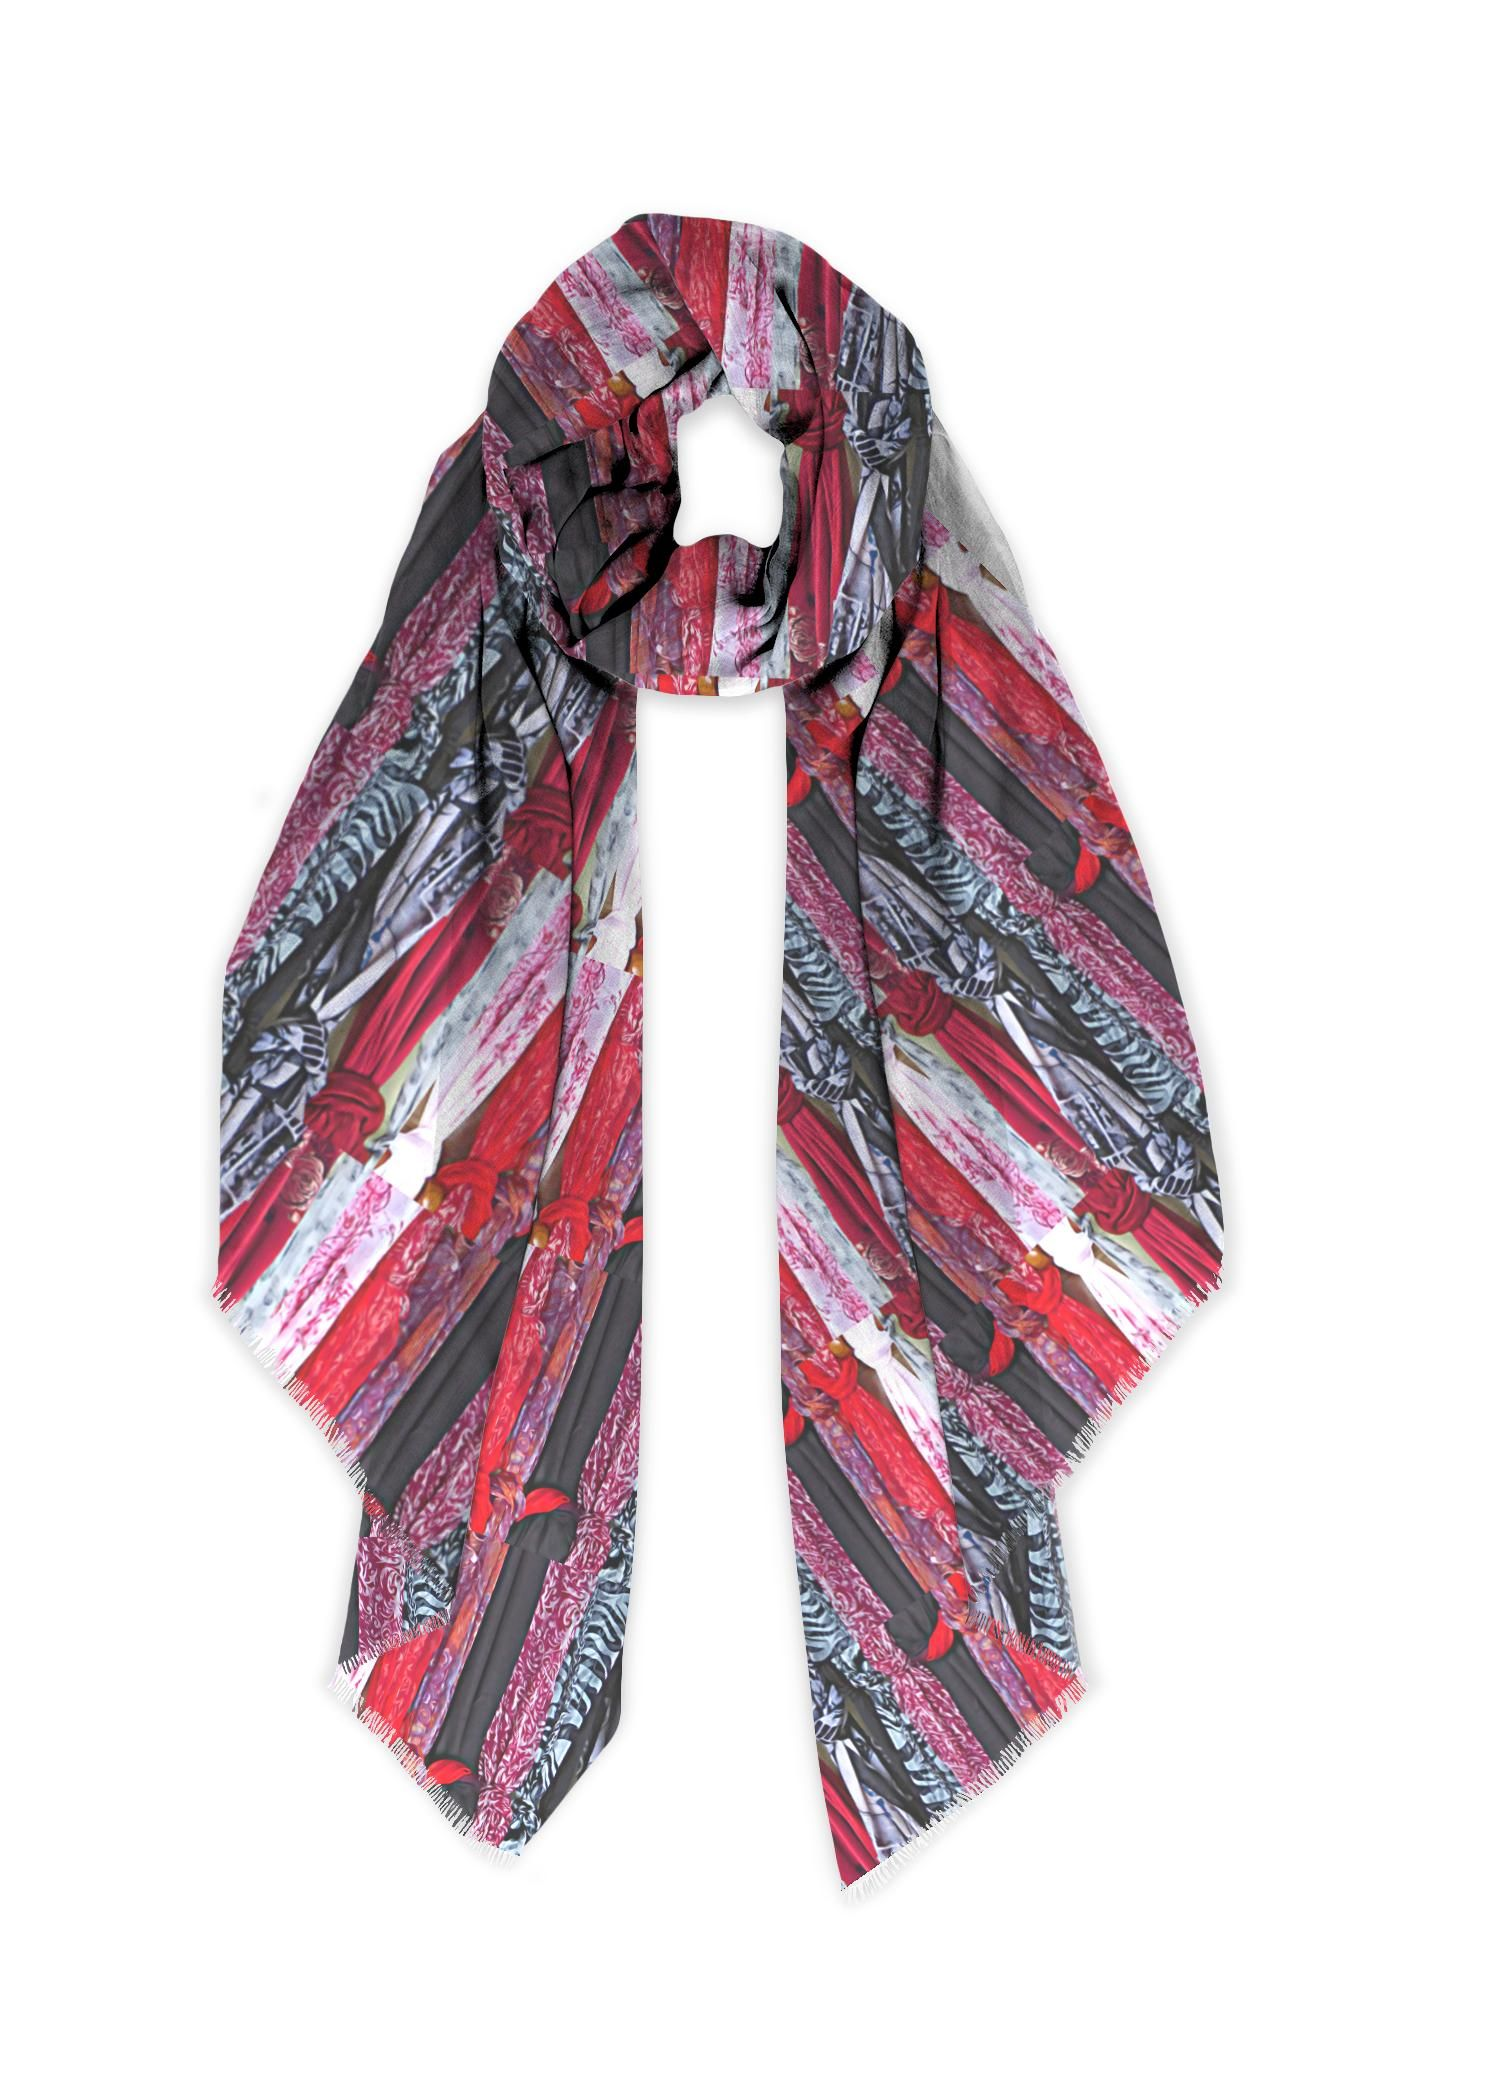 Silk Scarves Modal Scarves 100 Modal Silk This Scarf S Botanic Origin Makes It Eco Friendly And Incredibly So Silk Scarf Design Silk Scarves Chic Scarves